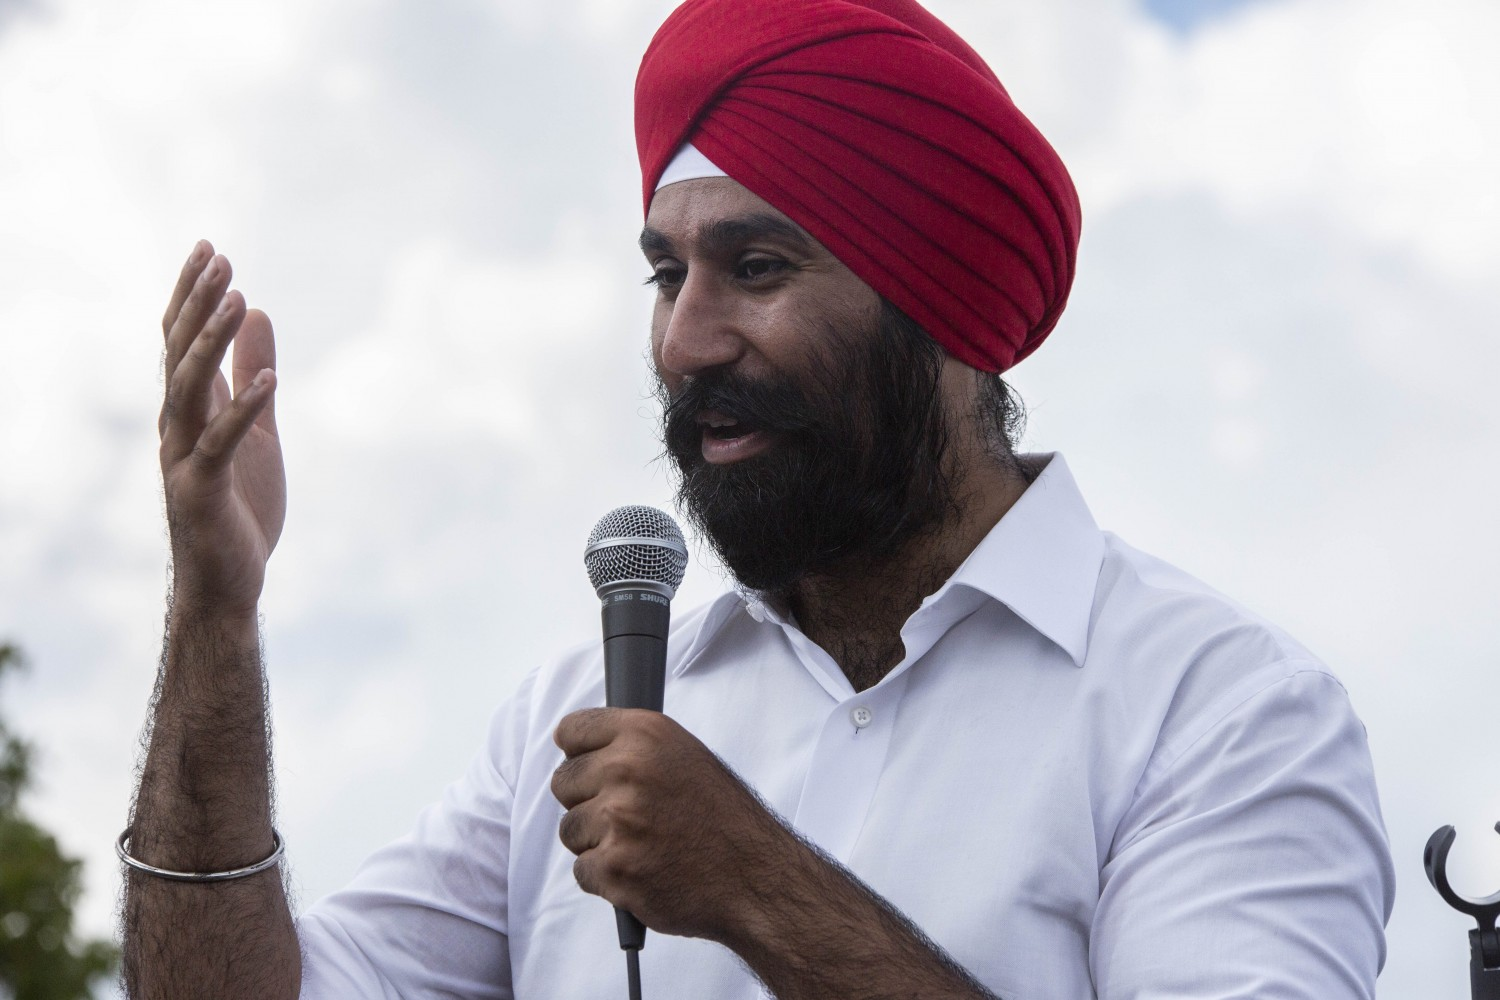 Brampton law firm silent on its employment of former MP Raj Grewal, who resigned due to a gambling problem